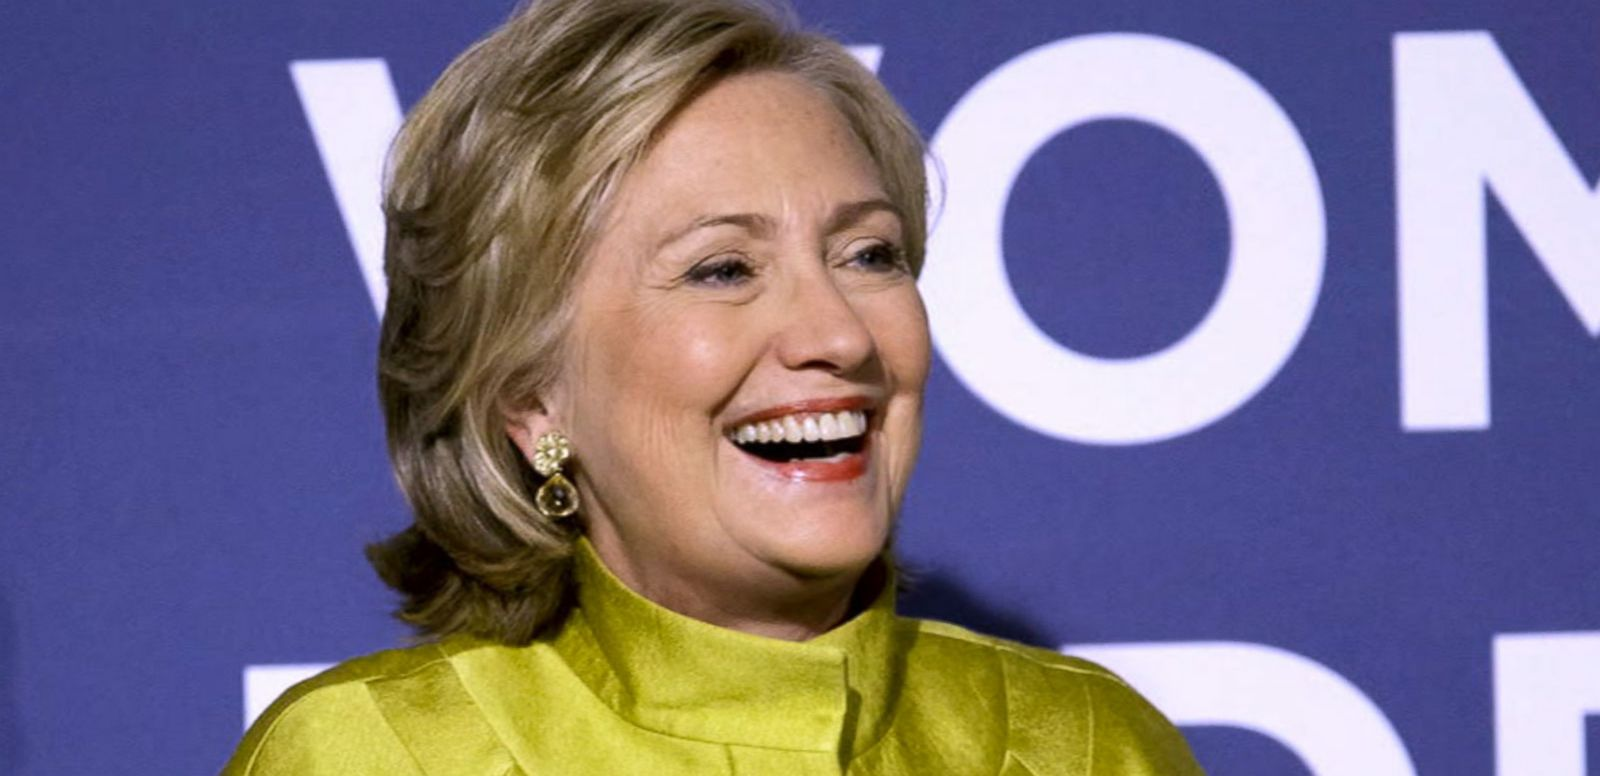 VIDEO: Hillary Clinton Campaign Readies for Launch